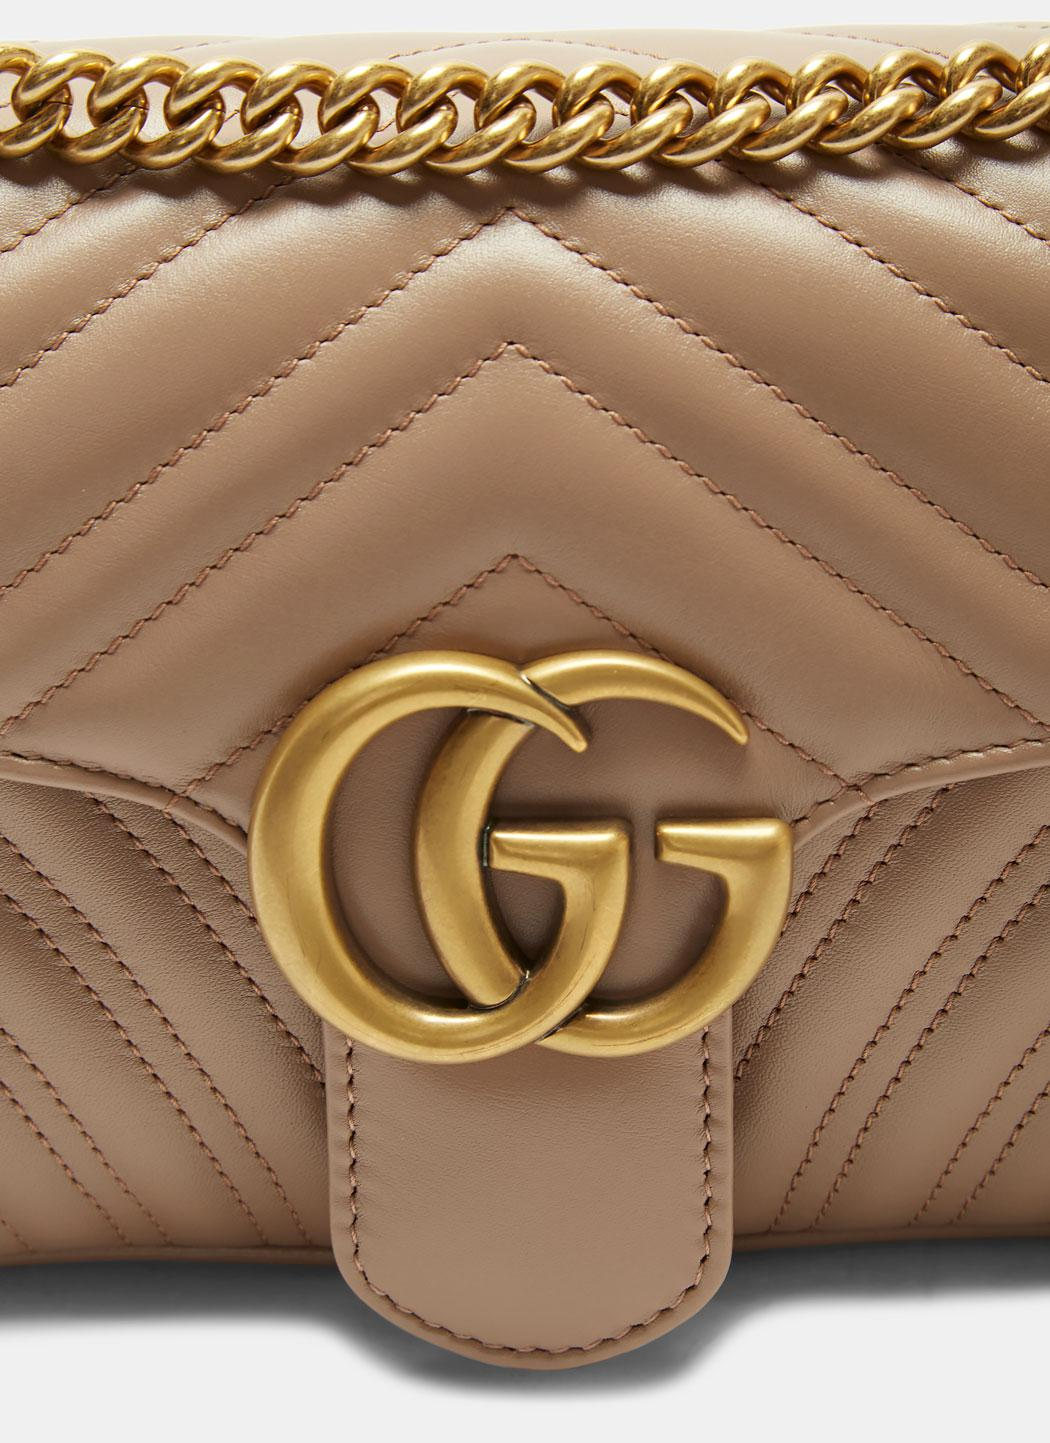 329413ed1a5823 Gucci Gg Marmont Matelassé Small Chain Shoulder Bag In Taupe in ...